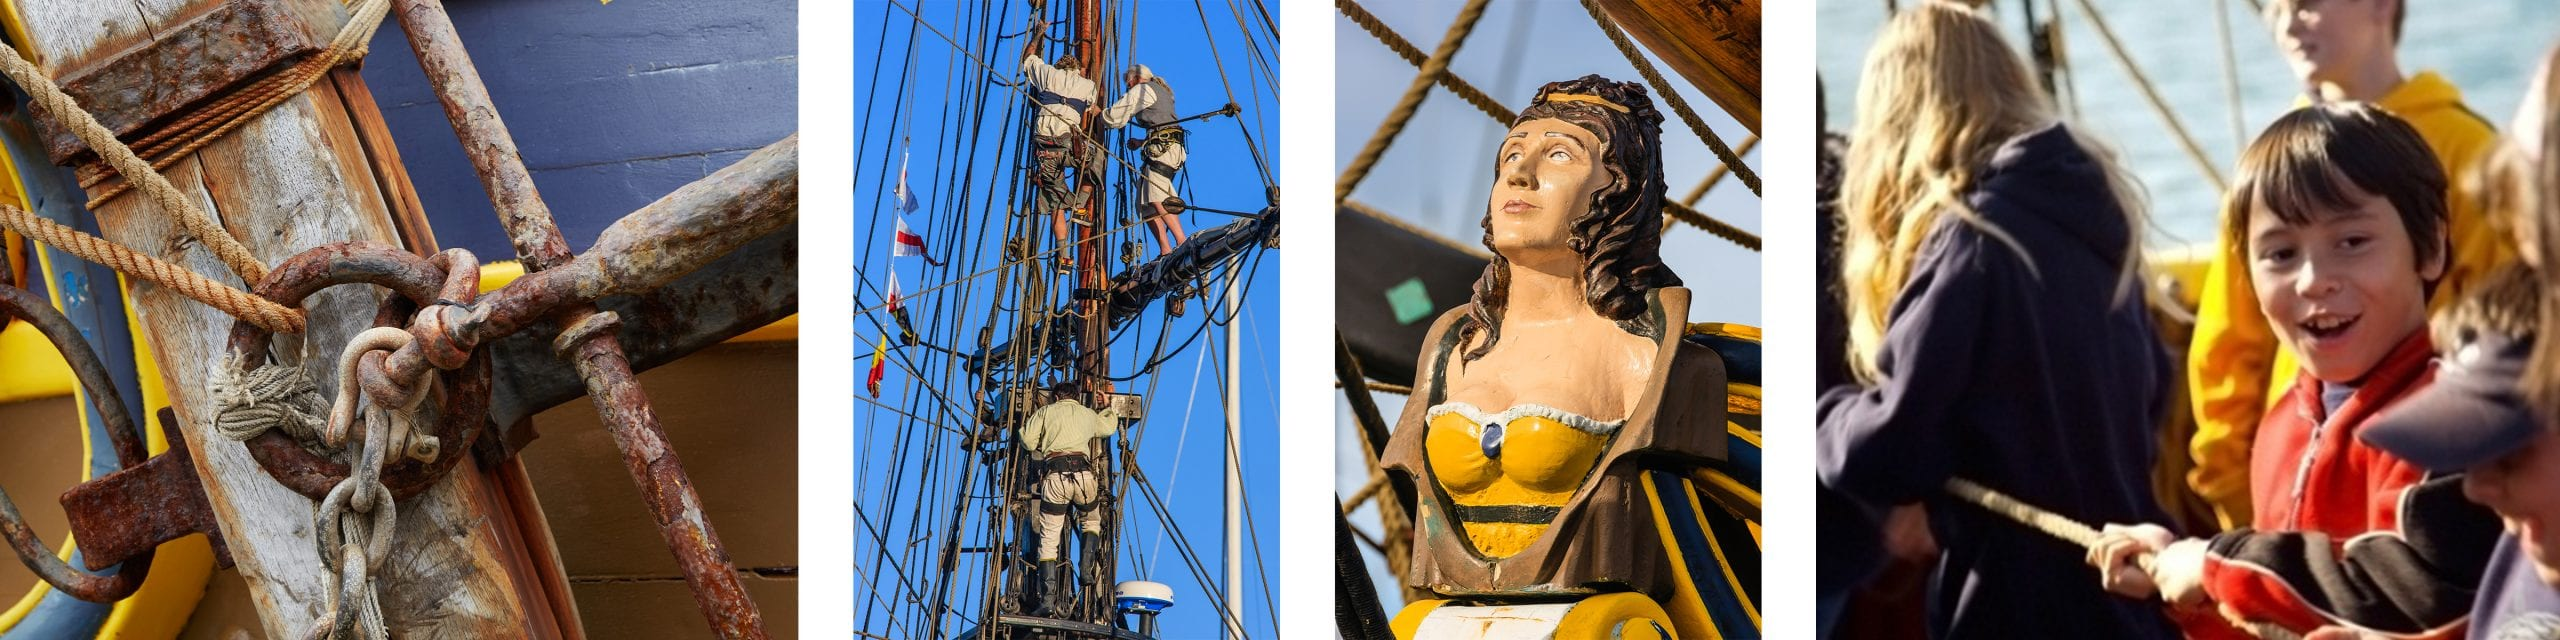 close up images of the tall ships magic, beauty, and historical treasures